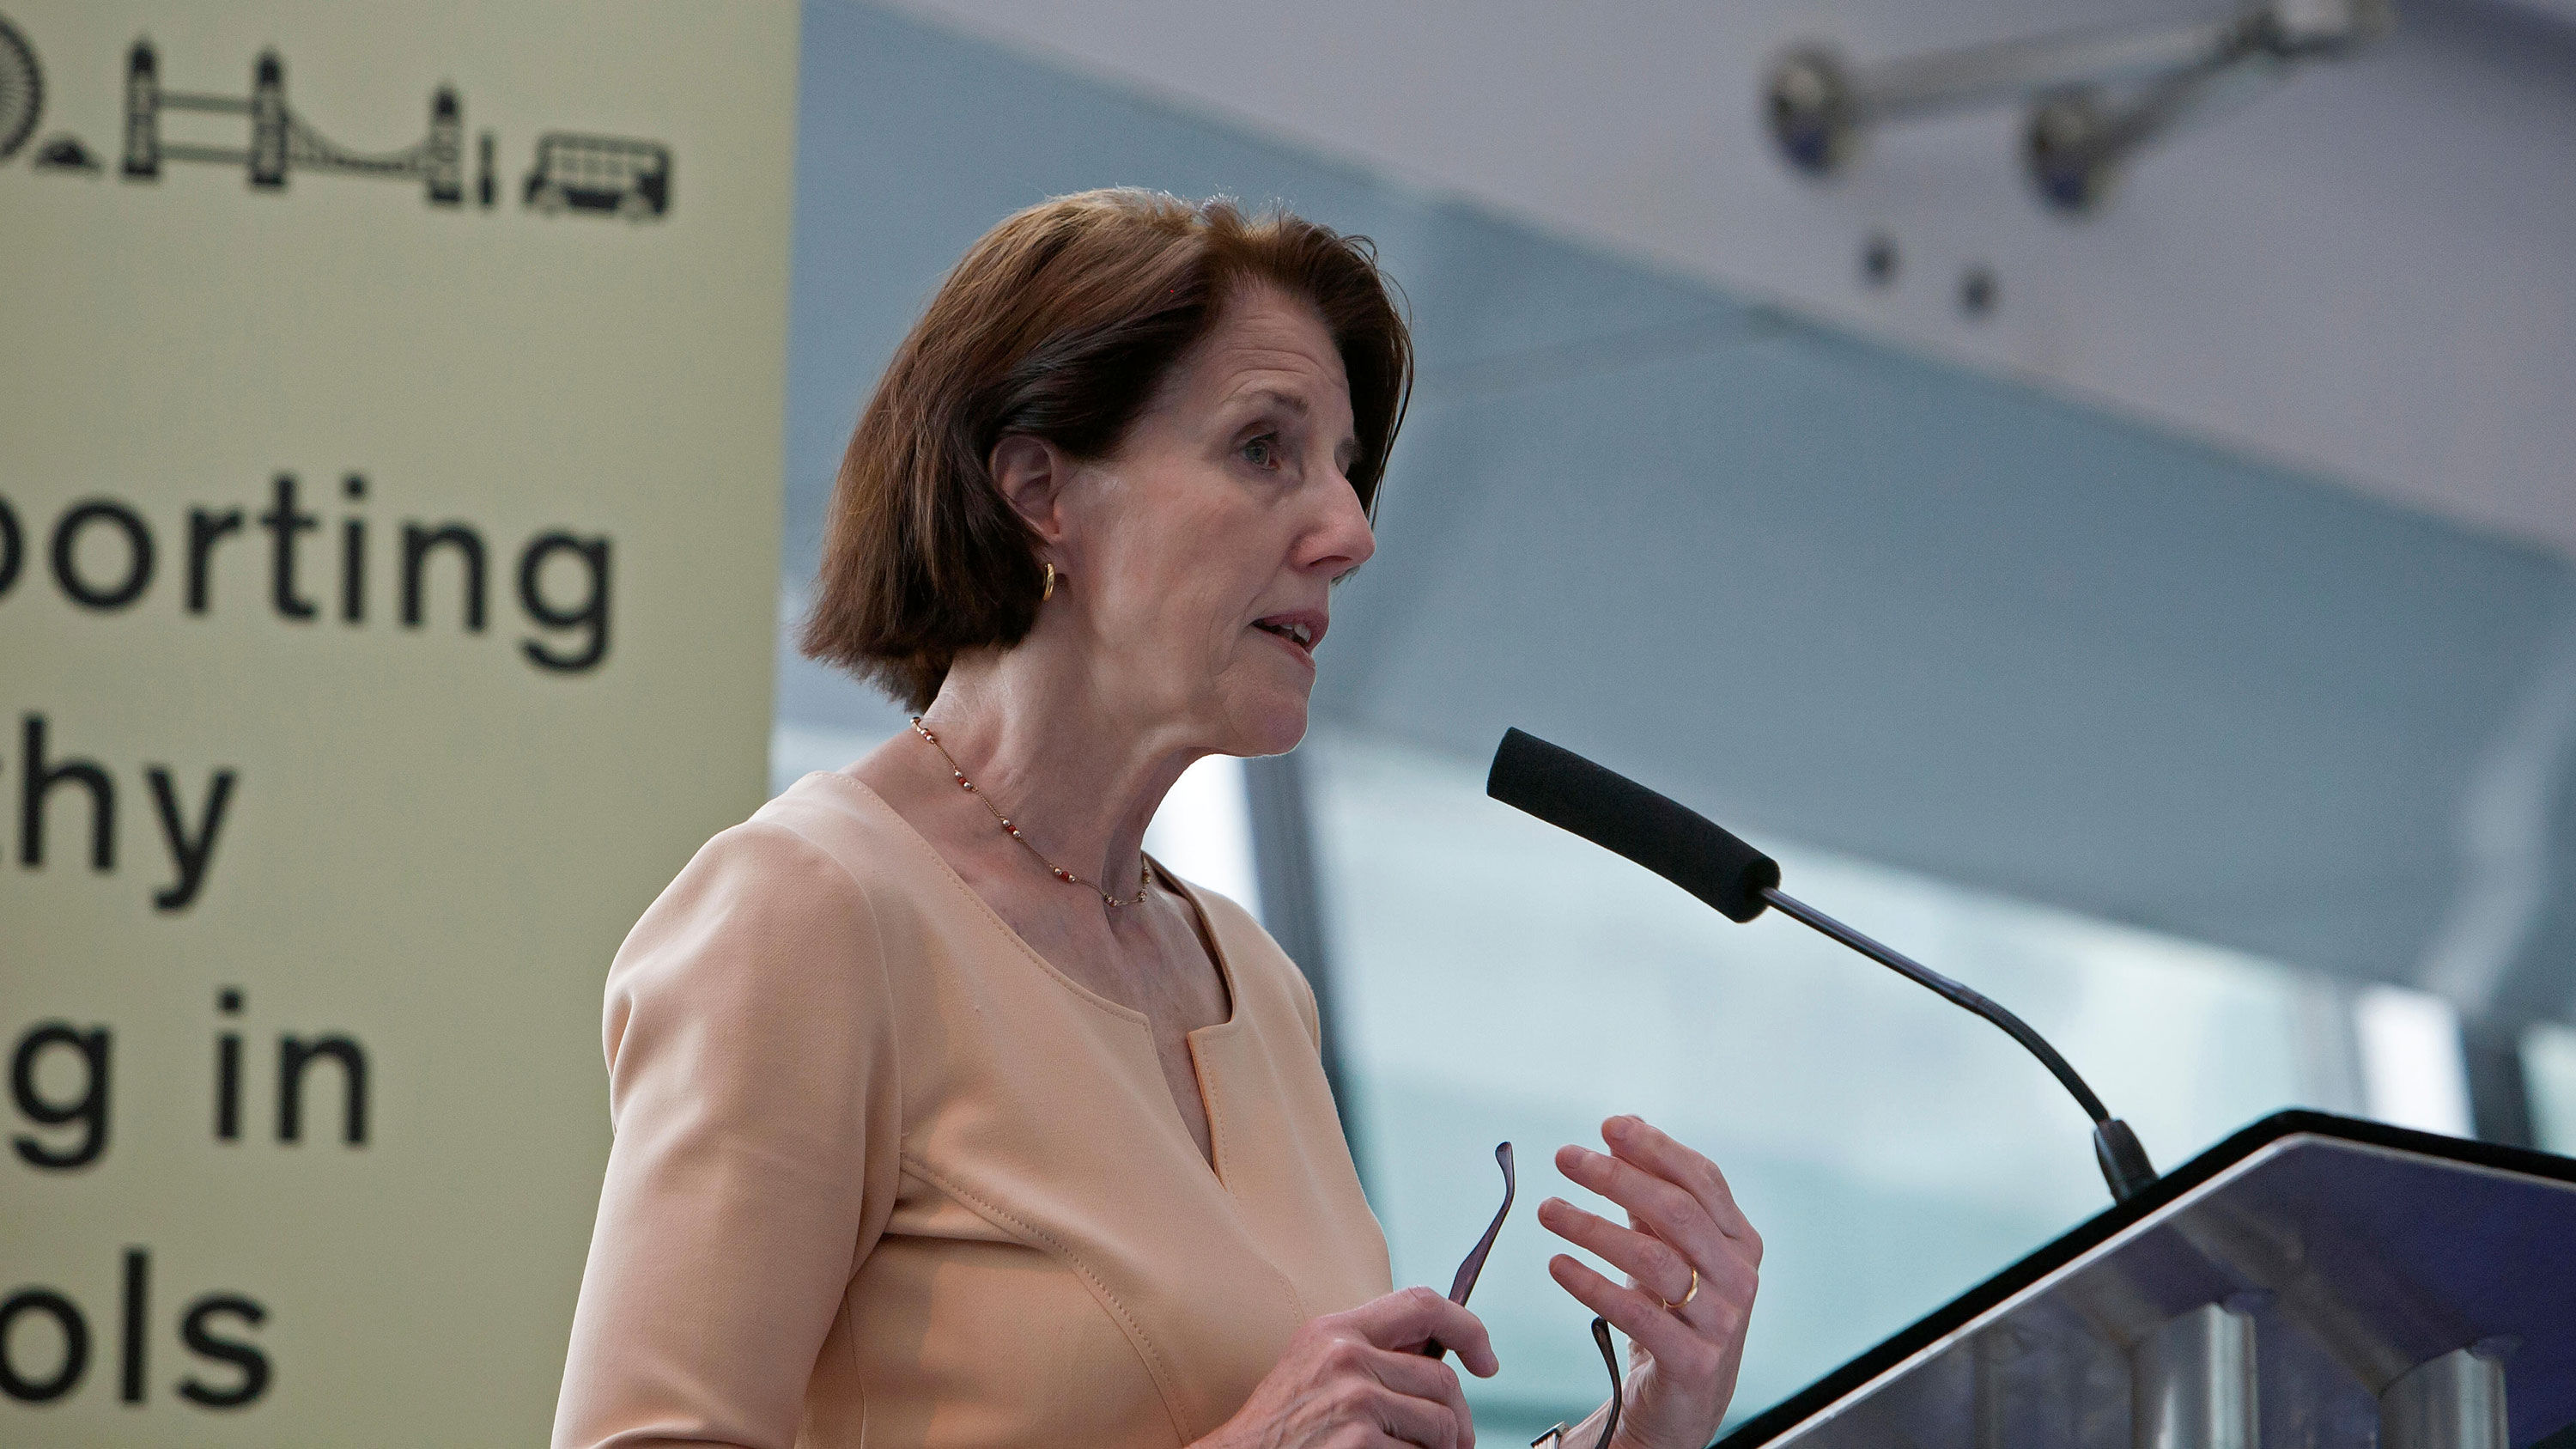 In this 2015 file photo, Dr. Yvonne Doyle speaks at City Hall in London.